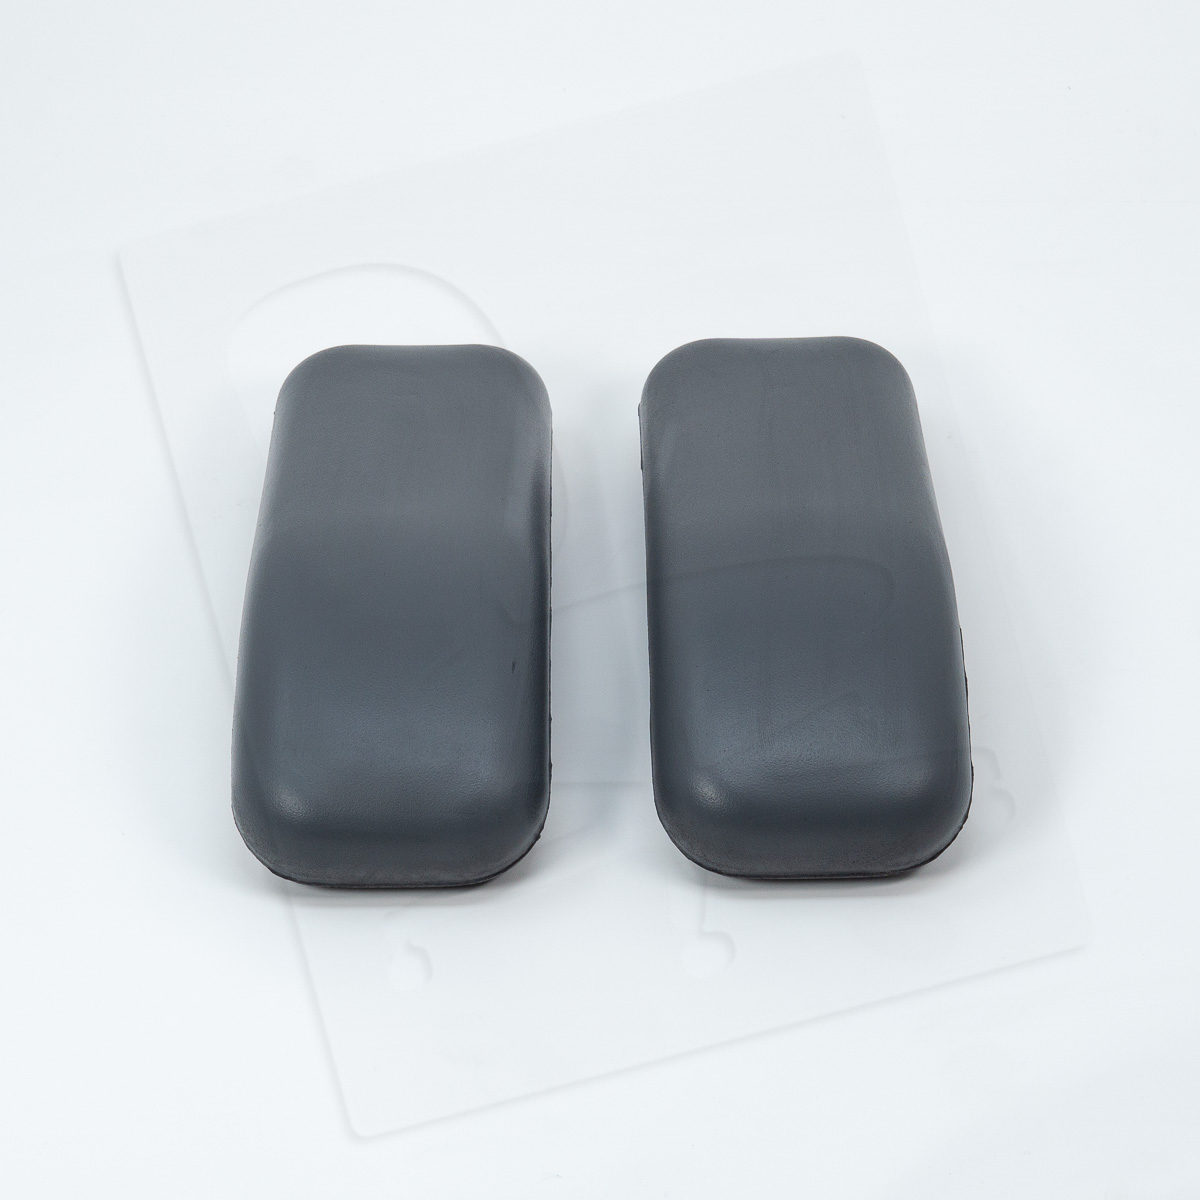 Crandall Office Furniture aftermarket replacement Herman Miller Equa Arm Pads - Grey 0002